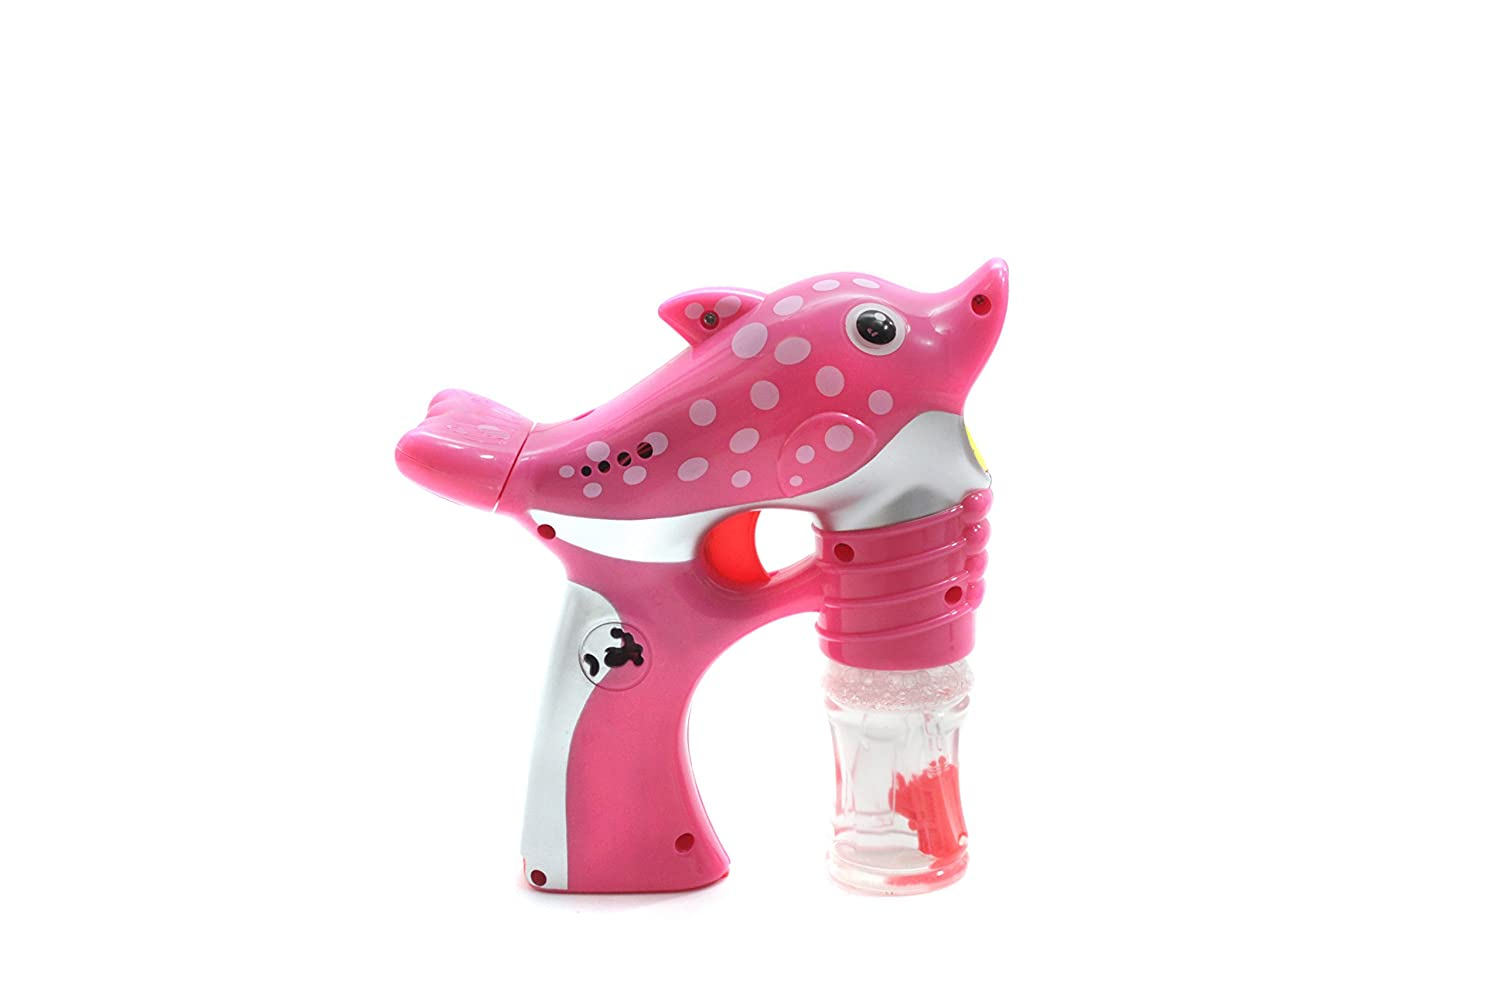 Bubble Gun Bubble Blowing Toy for Kids Toddlers Light Up Bubbleizer with LED Lights and Music Transparent Bubble Machine Gun with 2 Bottles Refill Solution Non Toxic Pink Dolphin Bubble Machine